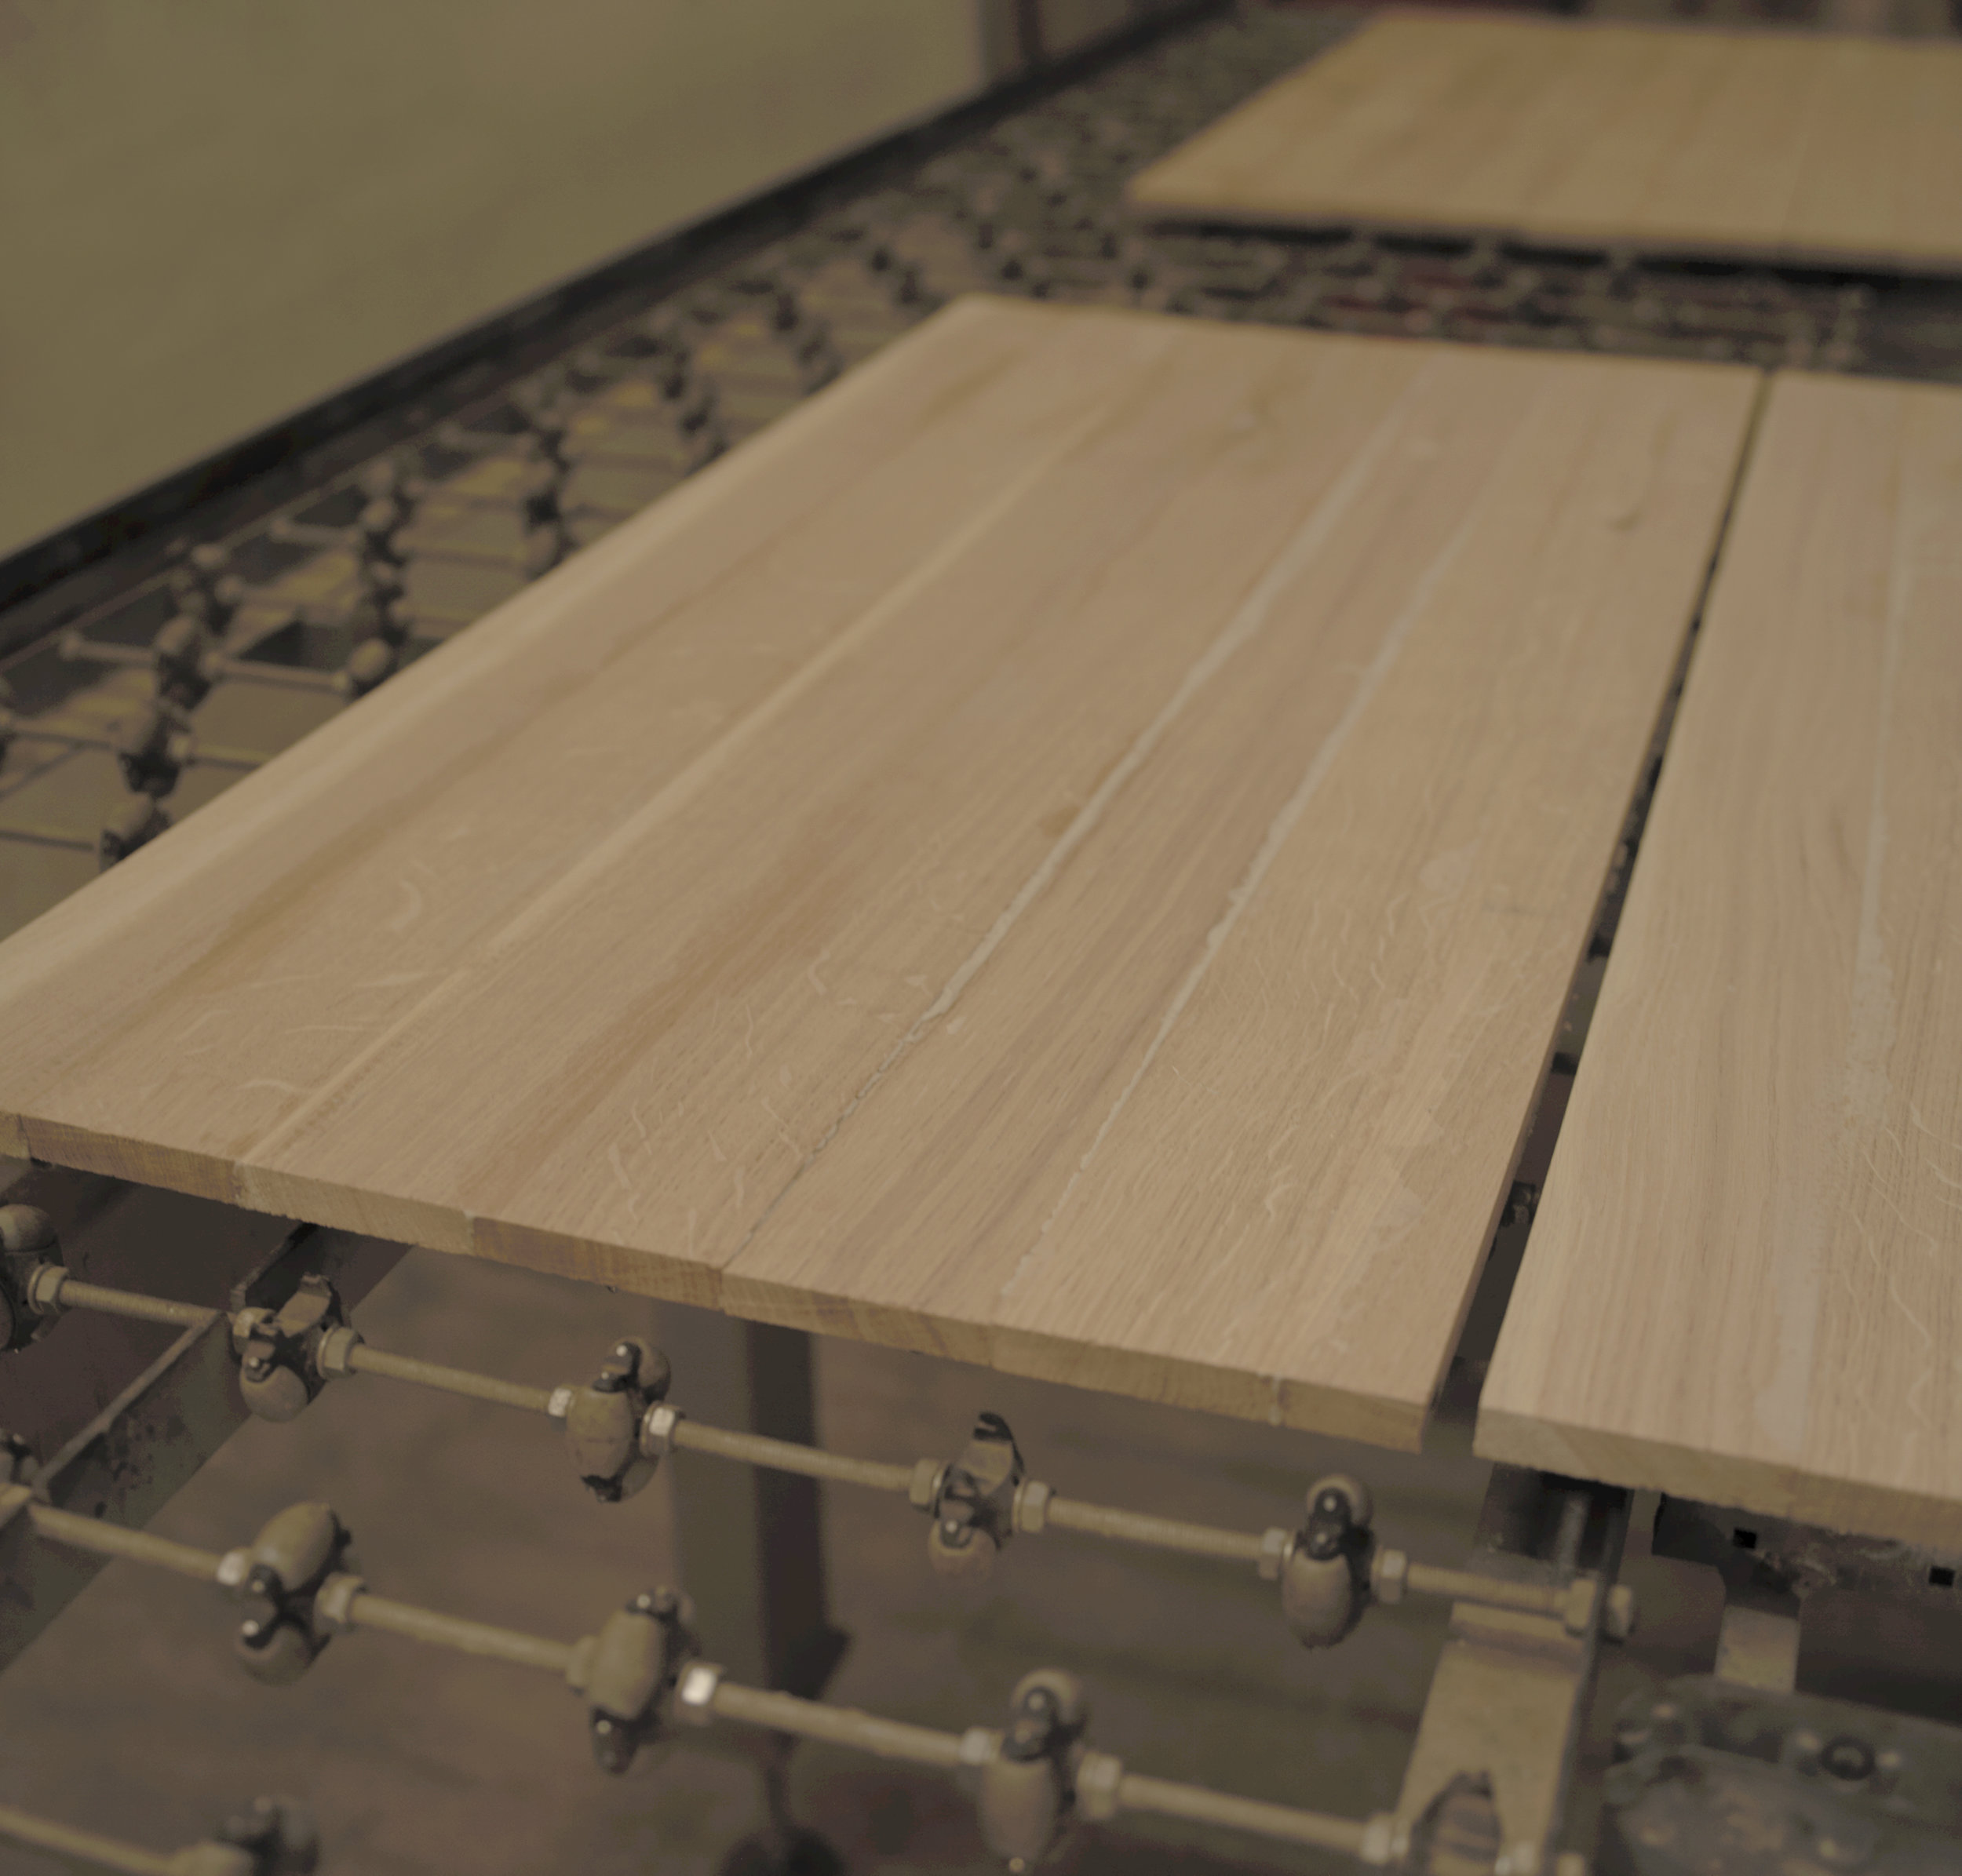 After cutting and gluing process, the wood pannel is converted into specific parts for the piece of furniture, using our CNC machines.